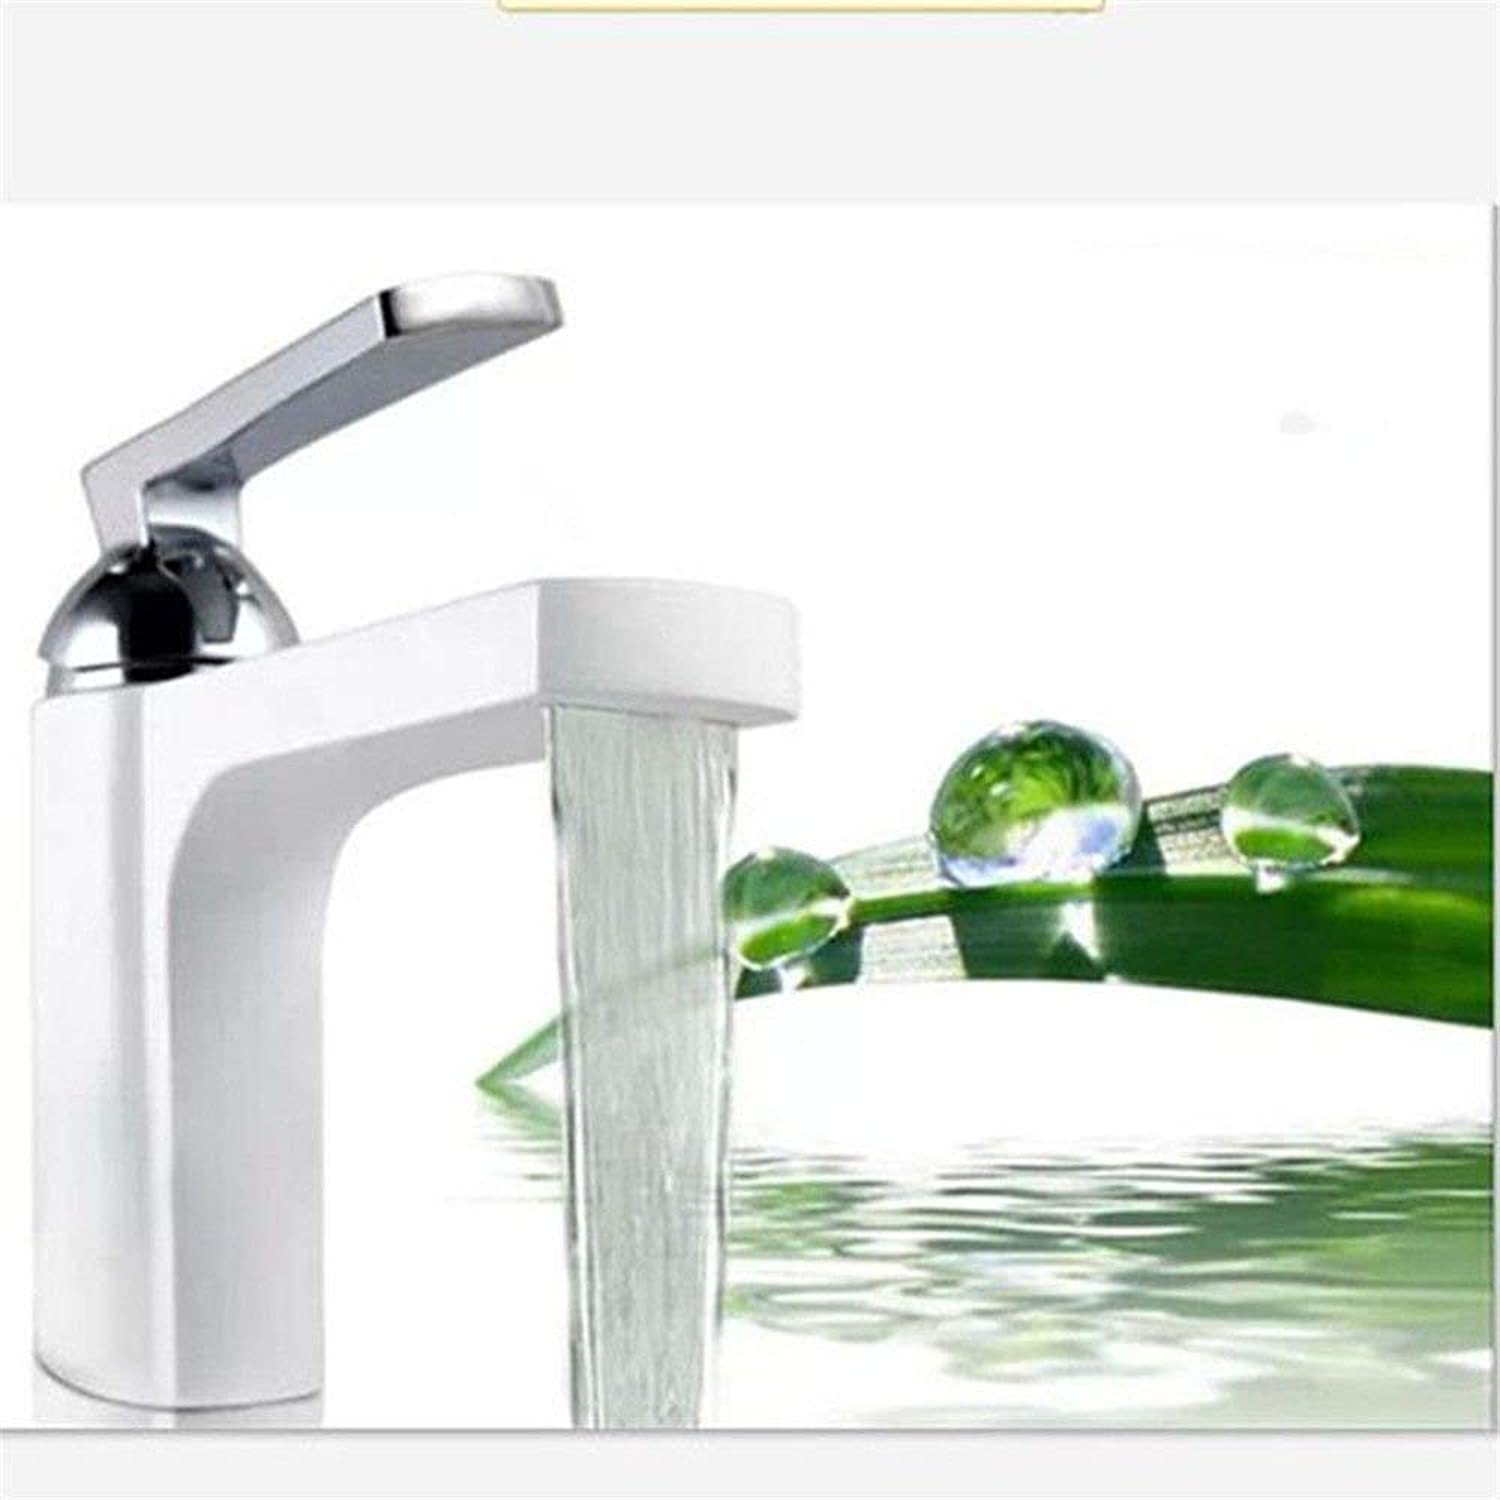 Oudan Kitchen bath basin sink mixer tap faucet solid brass basin mixer tap tall sink tap kitchen sink basin mixer tap hot and cold water sink faucet (color   -, Size   -)